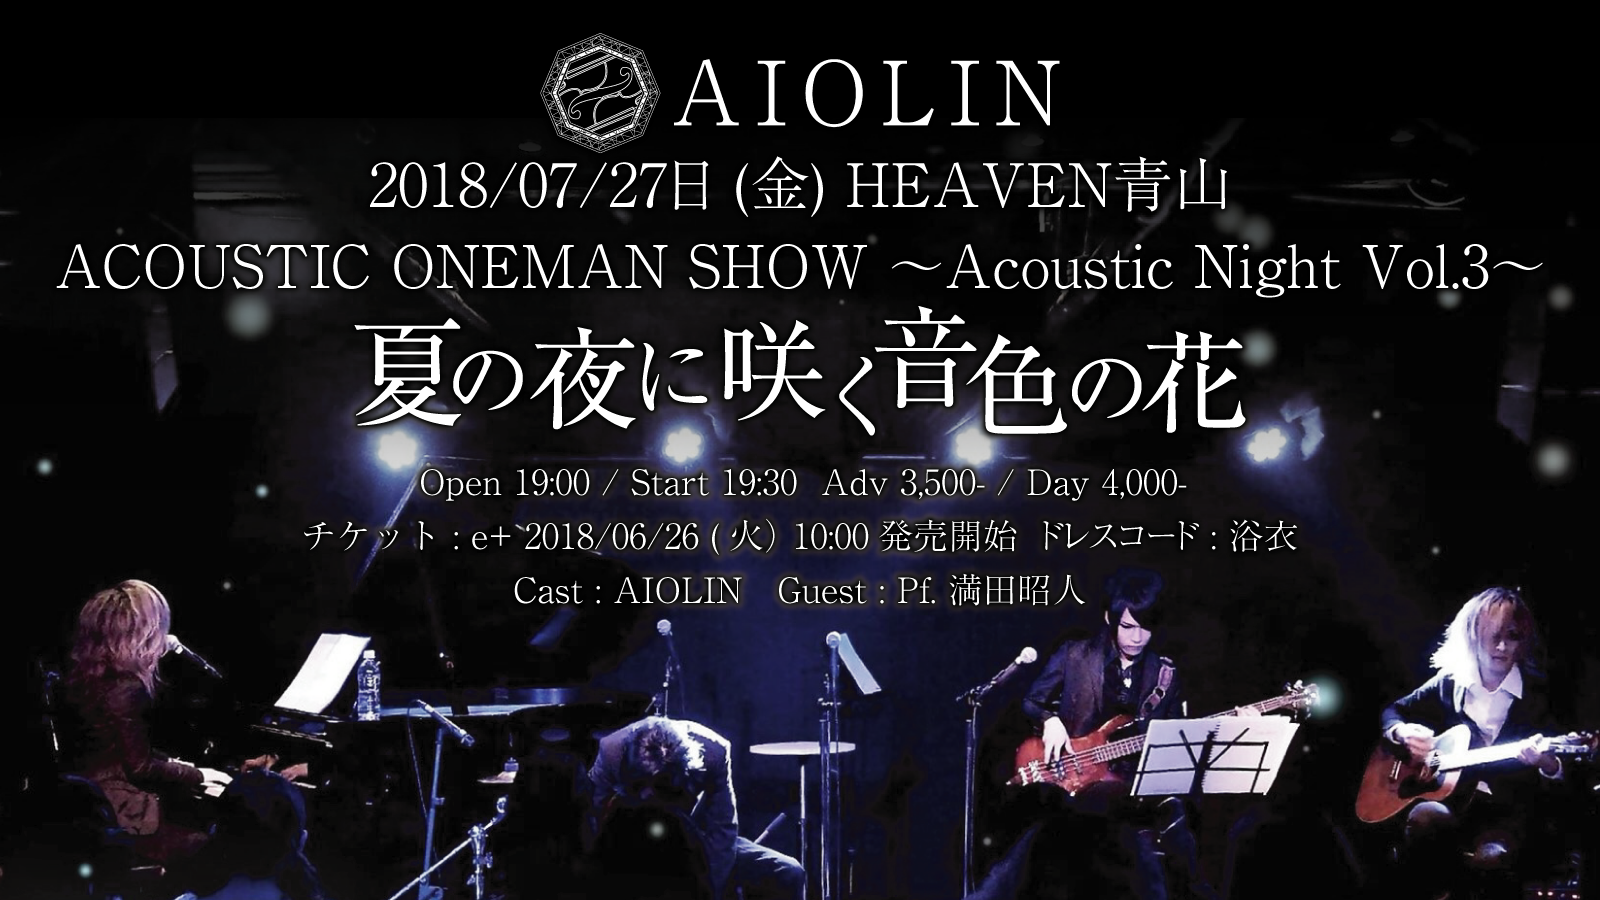 AIOLIN ACOUSTIC ONEMAN SHOW ~Acoustic Night Vol.3~「夏の夜に咲く音色の花」